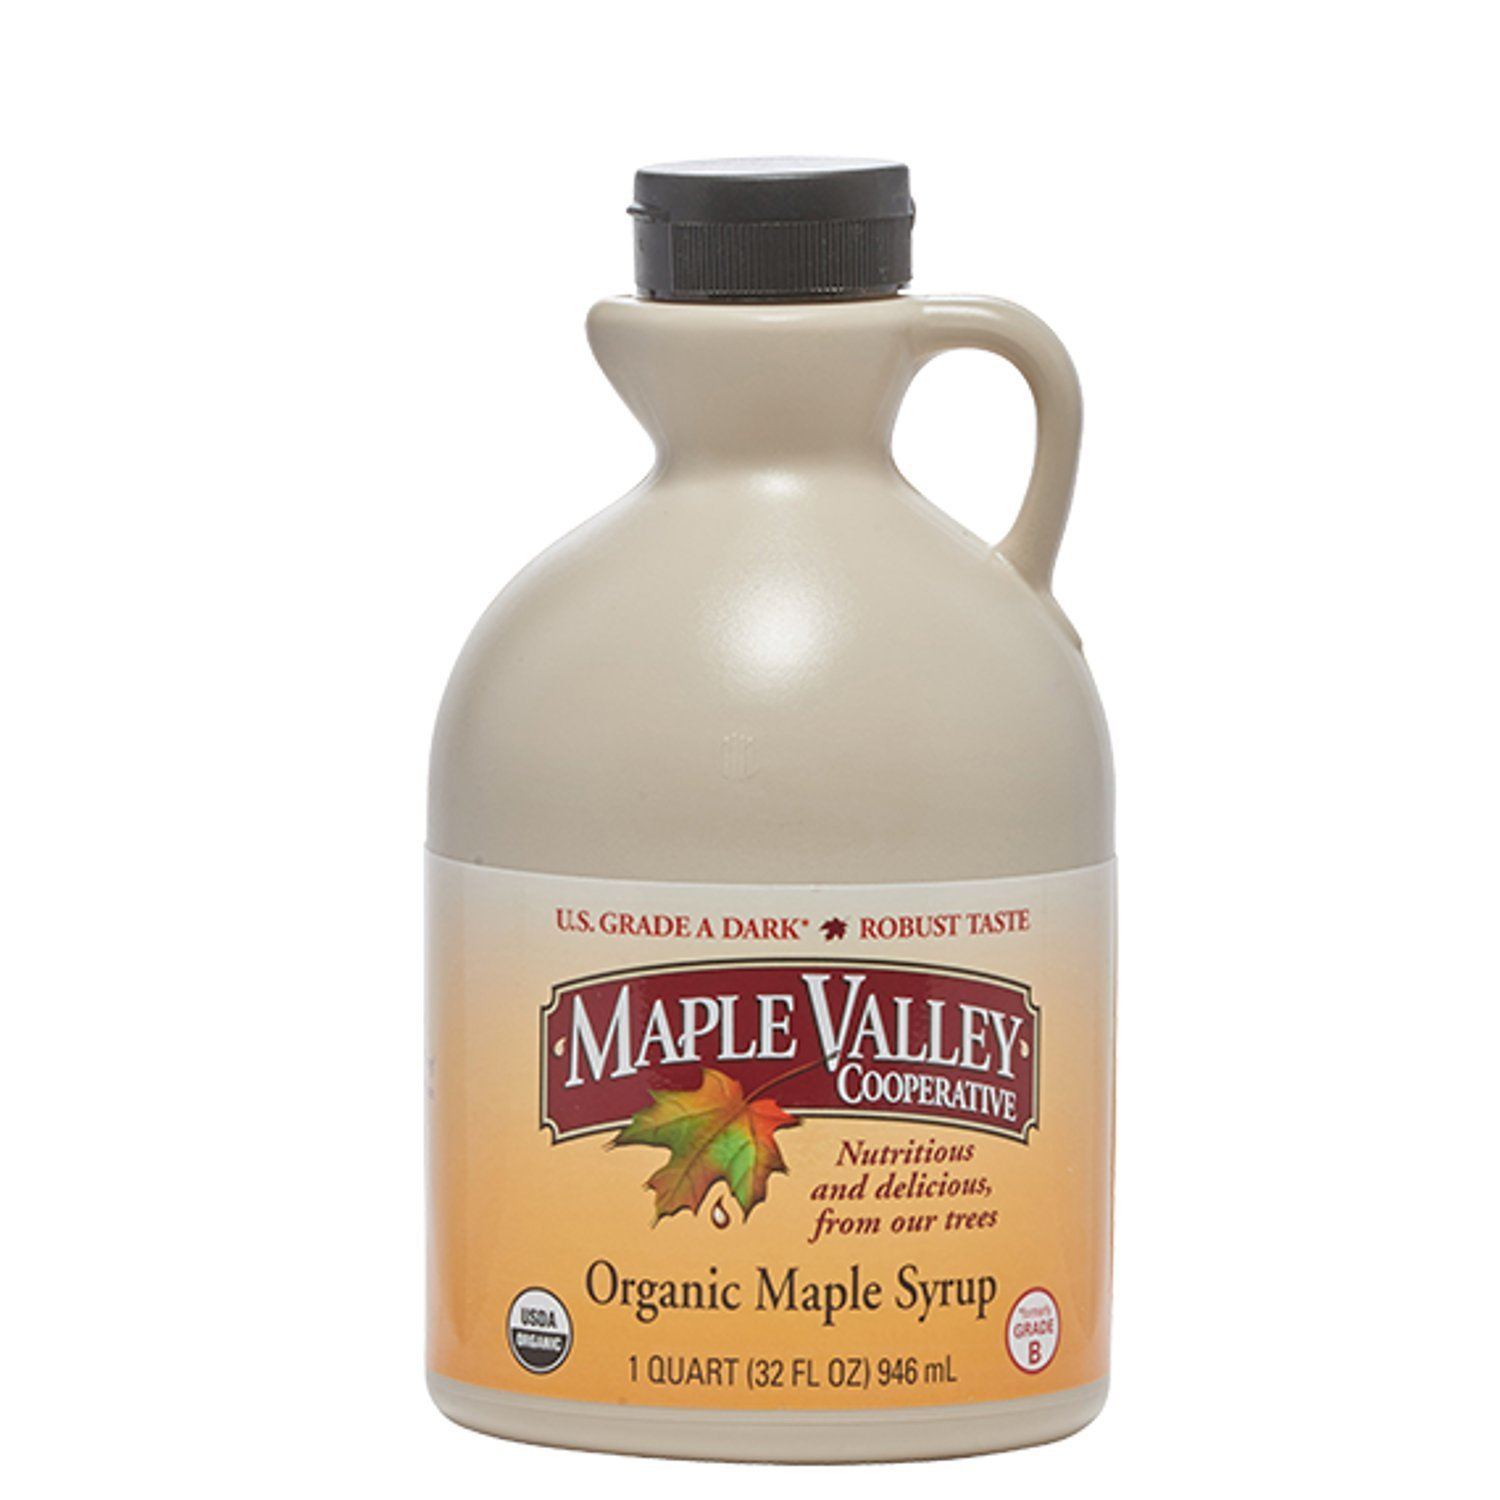 Maple Valley Pure Organic Maple Syrup 32 Oz. Grade A Dark Robust Maple Syrup *Formerly Grade B* in Bpa-free Plastic Jug